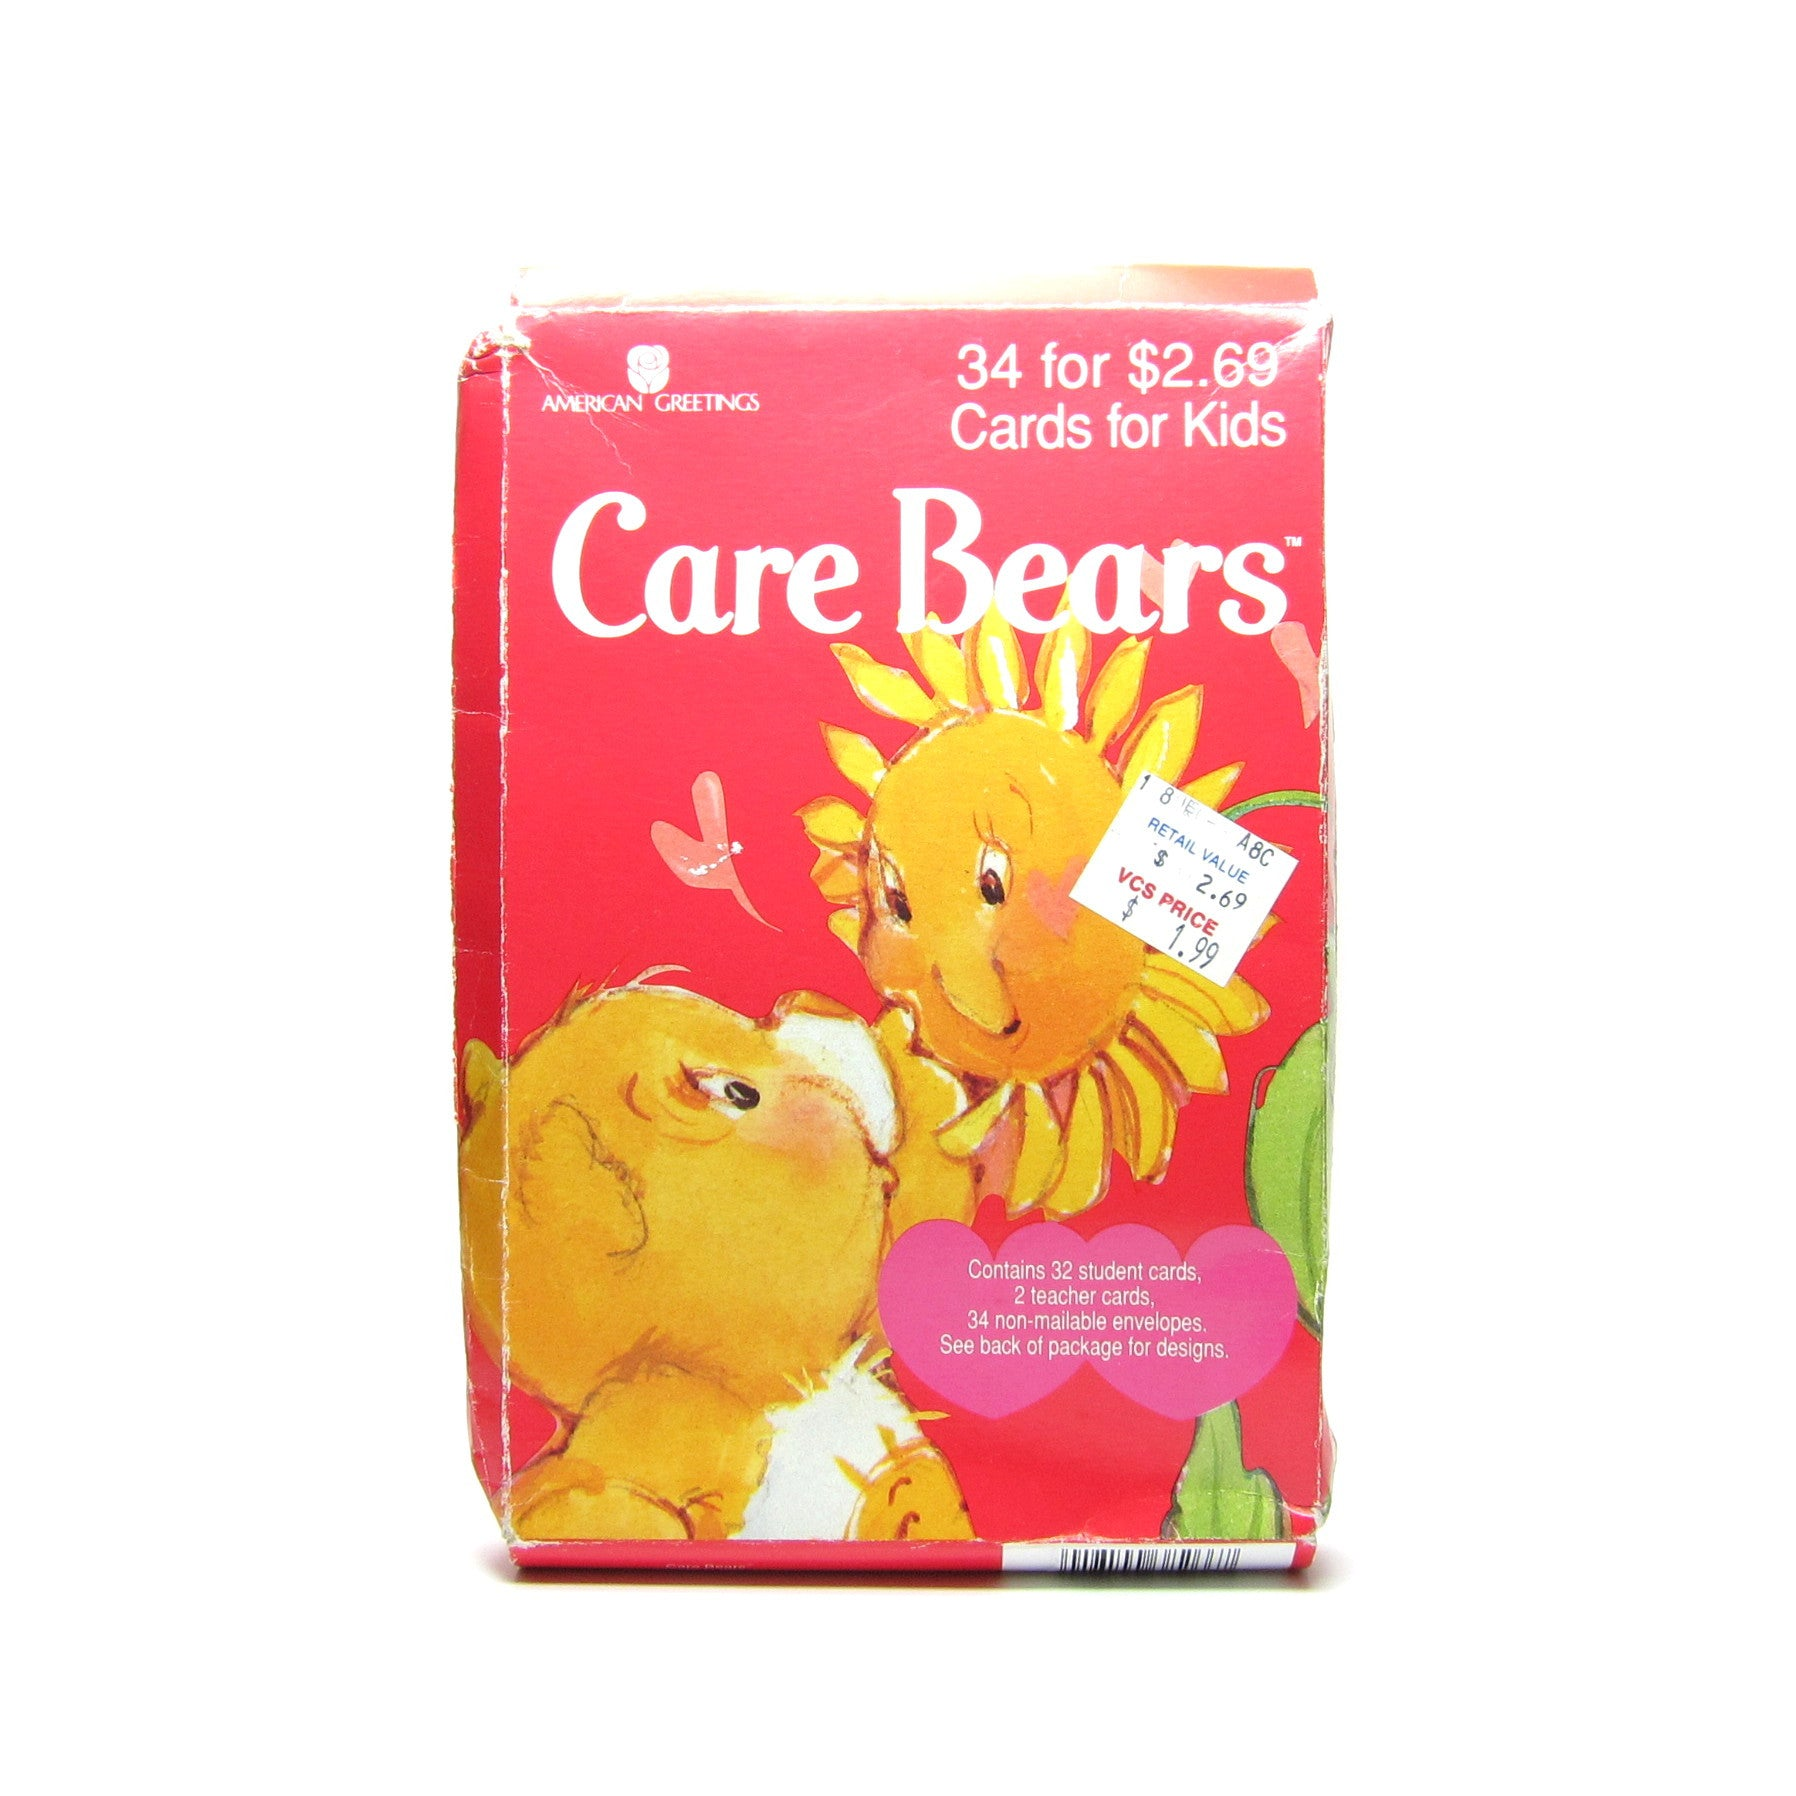 Care Bears vintage Valentine's Day cards